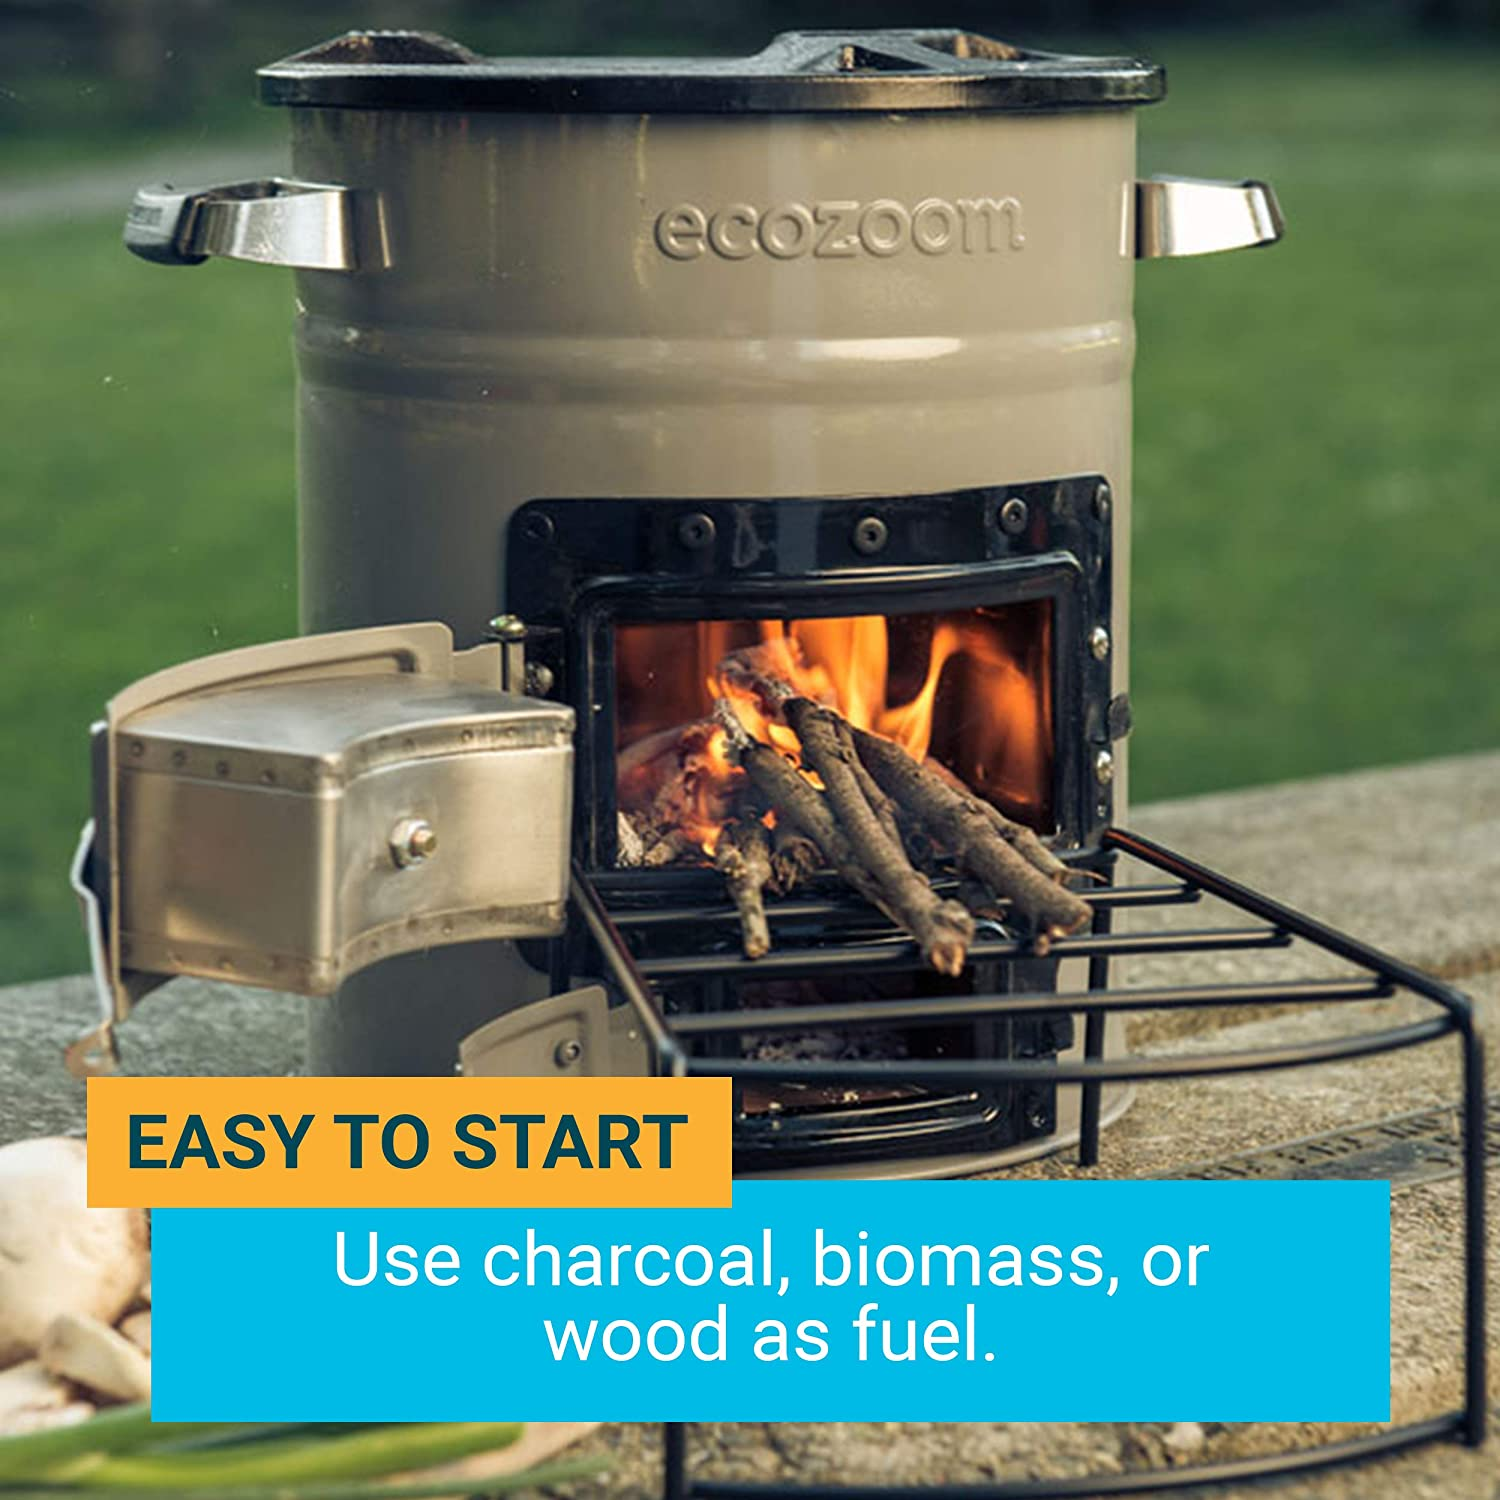 Ecozoom Zoom Versa Rocket Stove Wood Biomass Or Charcoal Fuel Another Diagram Build Pinterest Sports Outdoors